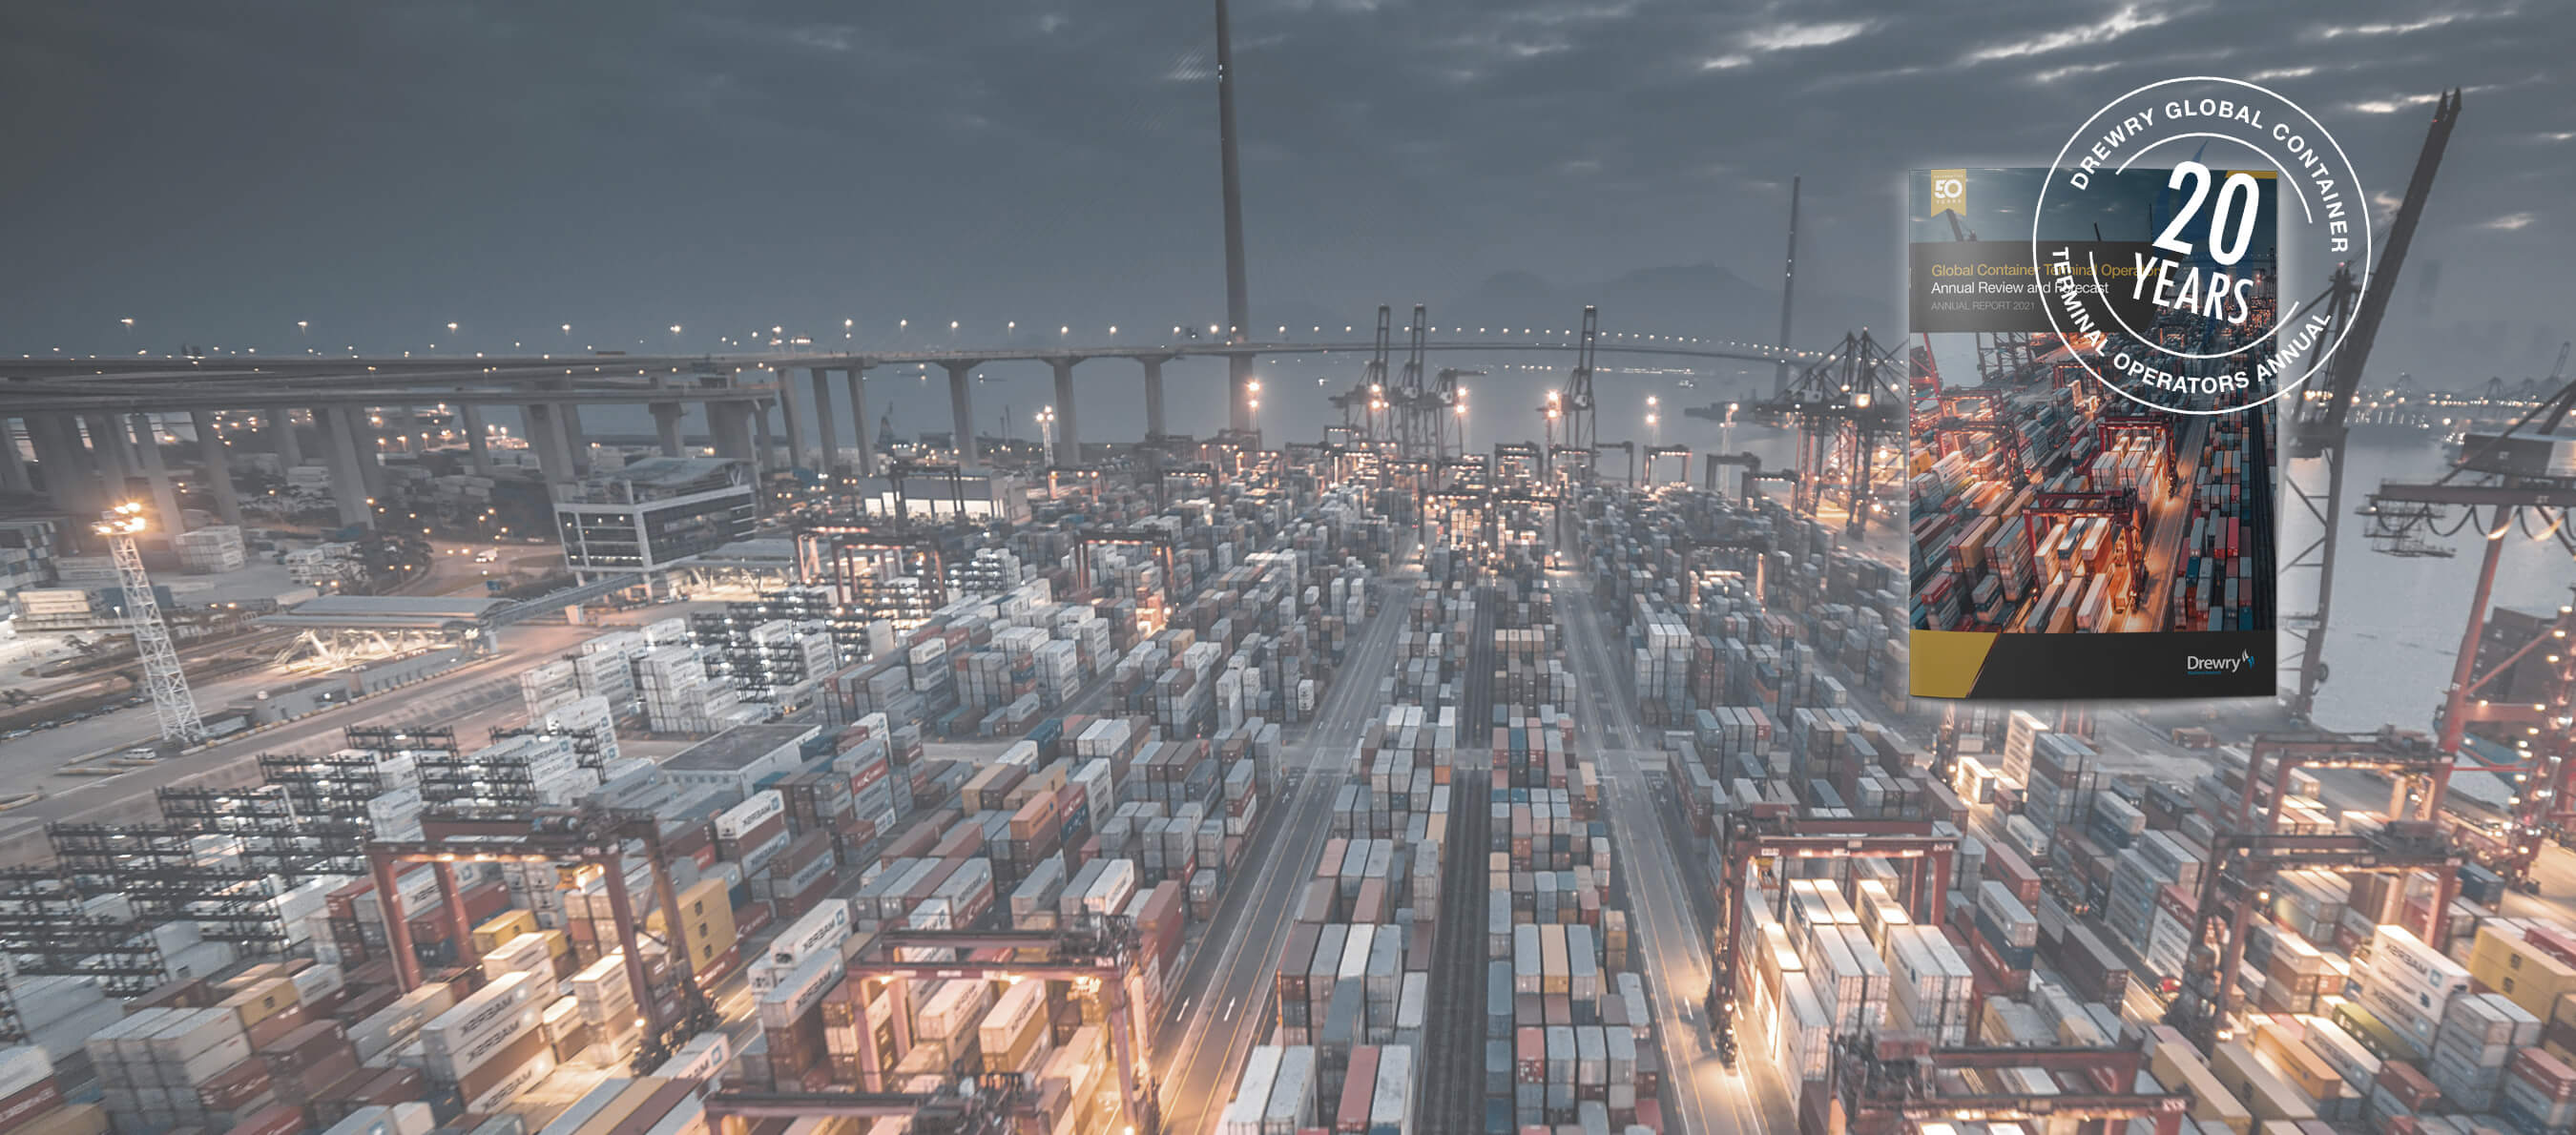 /maritime-research-products/global-container-terminal-operators-annual-review-and-forecast-202122